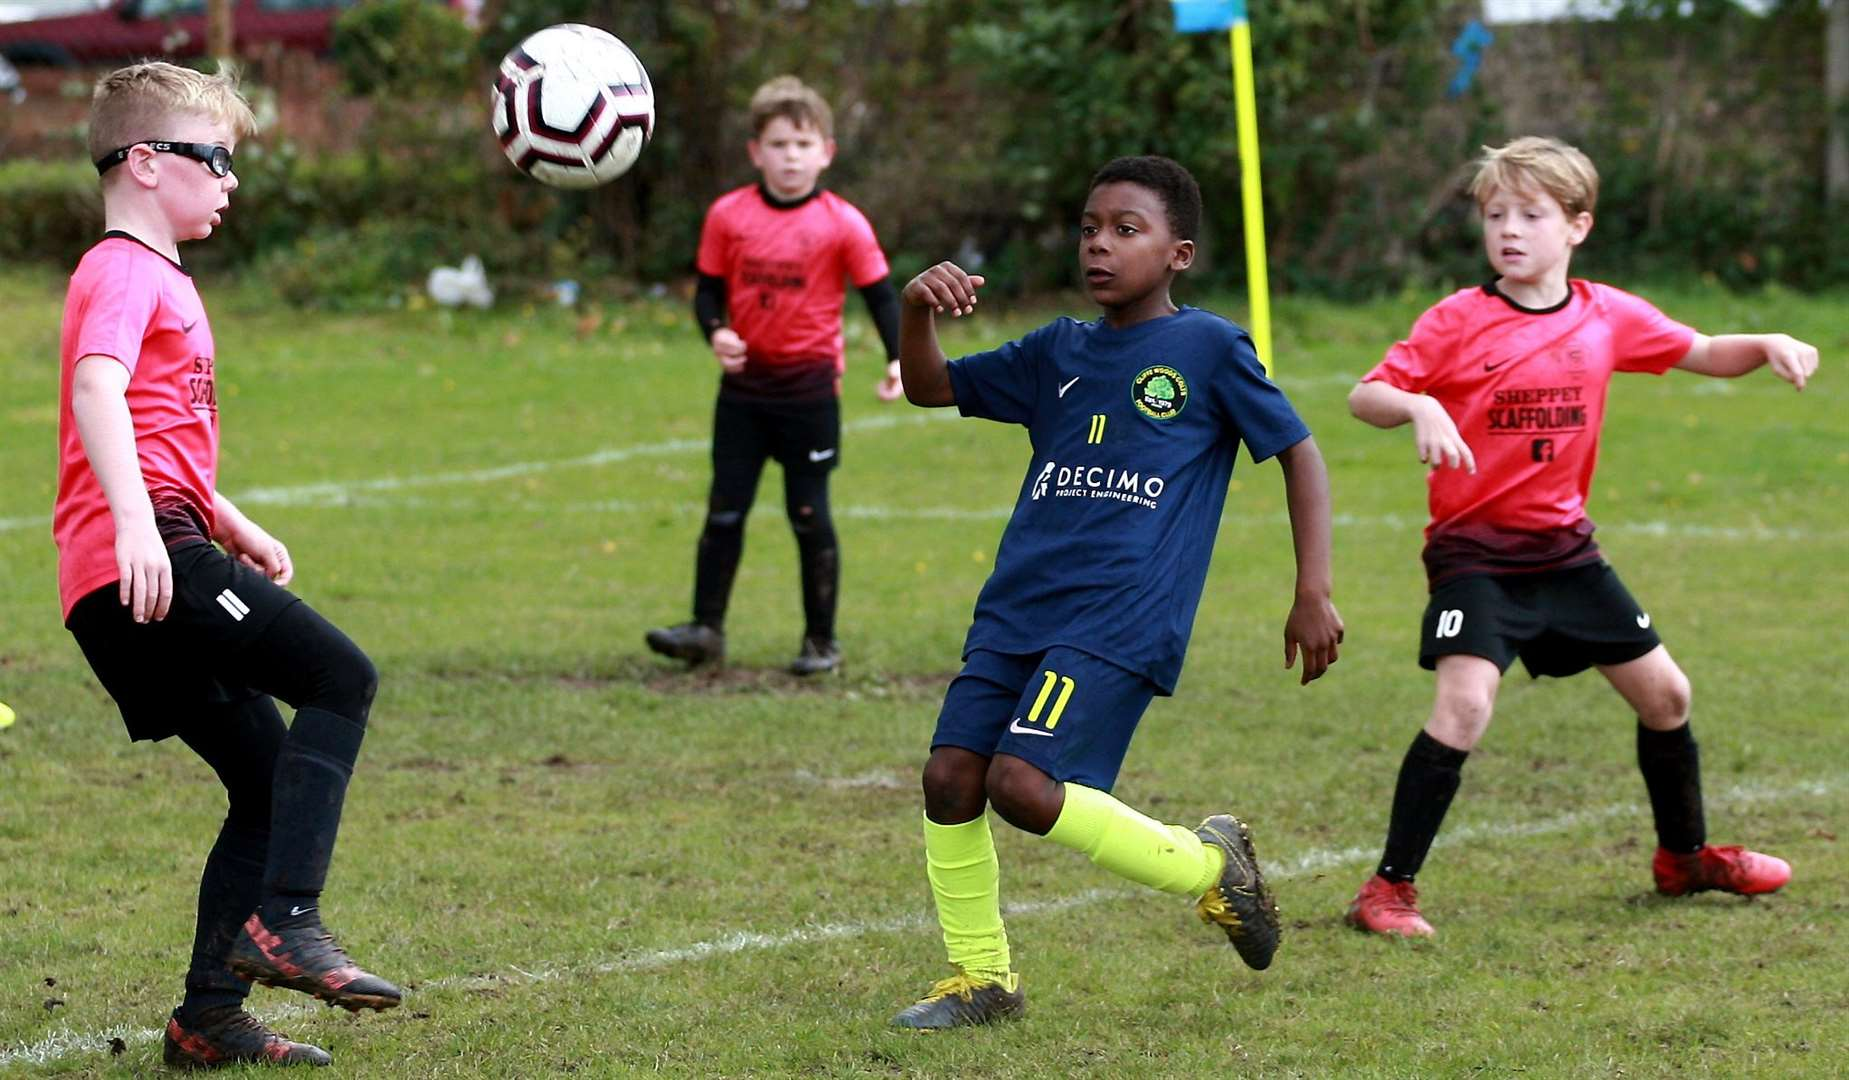 Sheerness East Youth under-9s (pink) take on Cliffe Woods Colts under-9s Picture: Phil Lee FM18684377